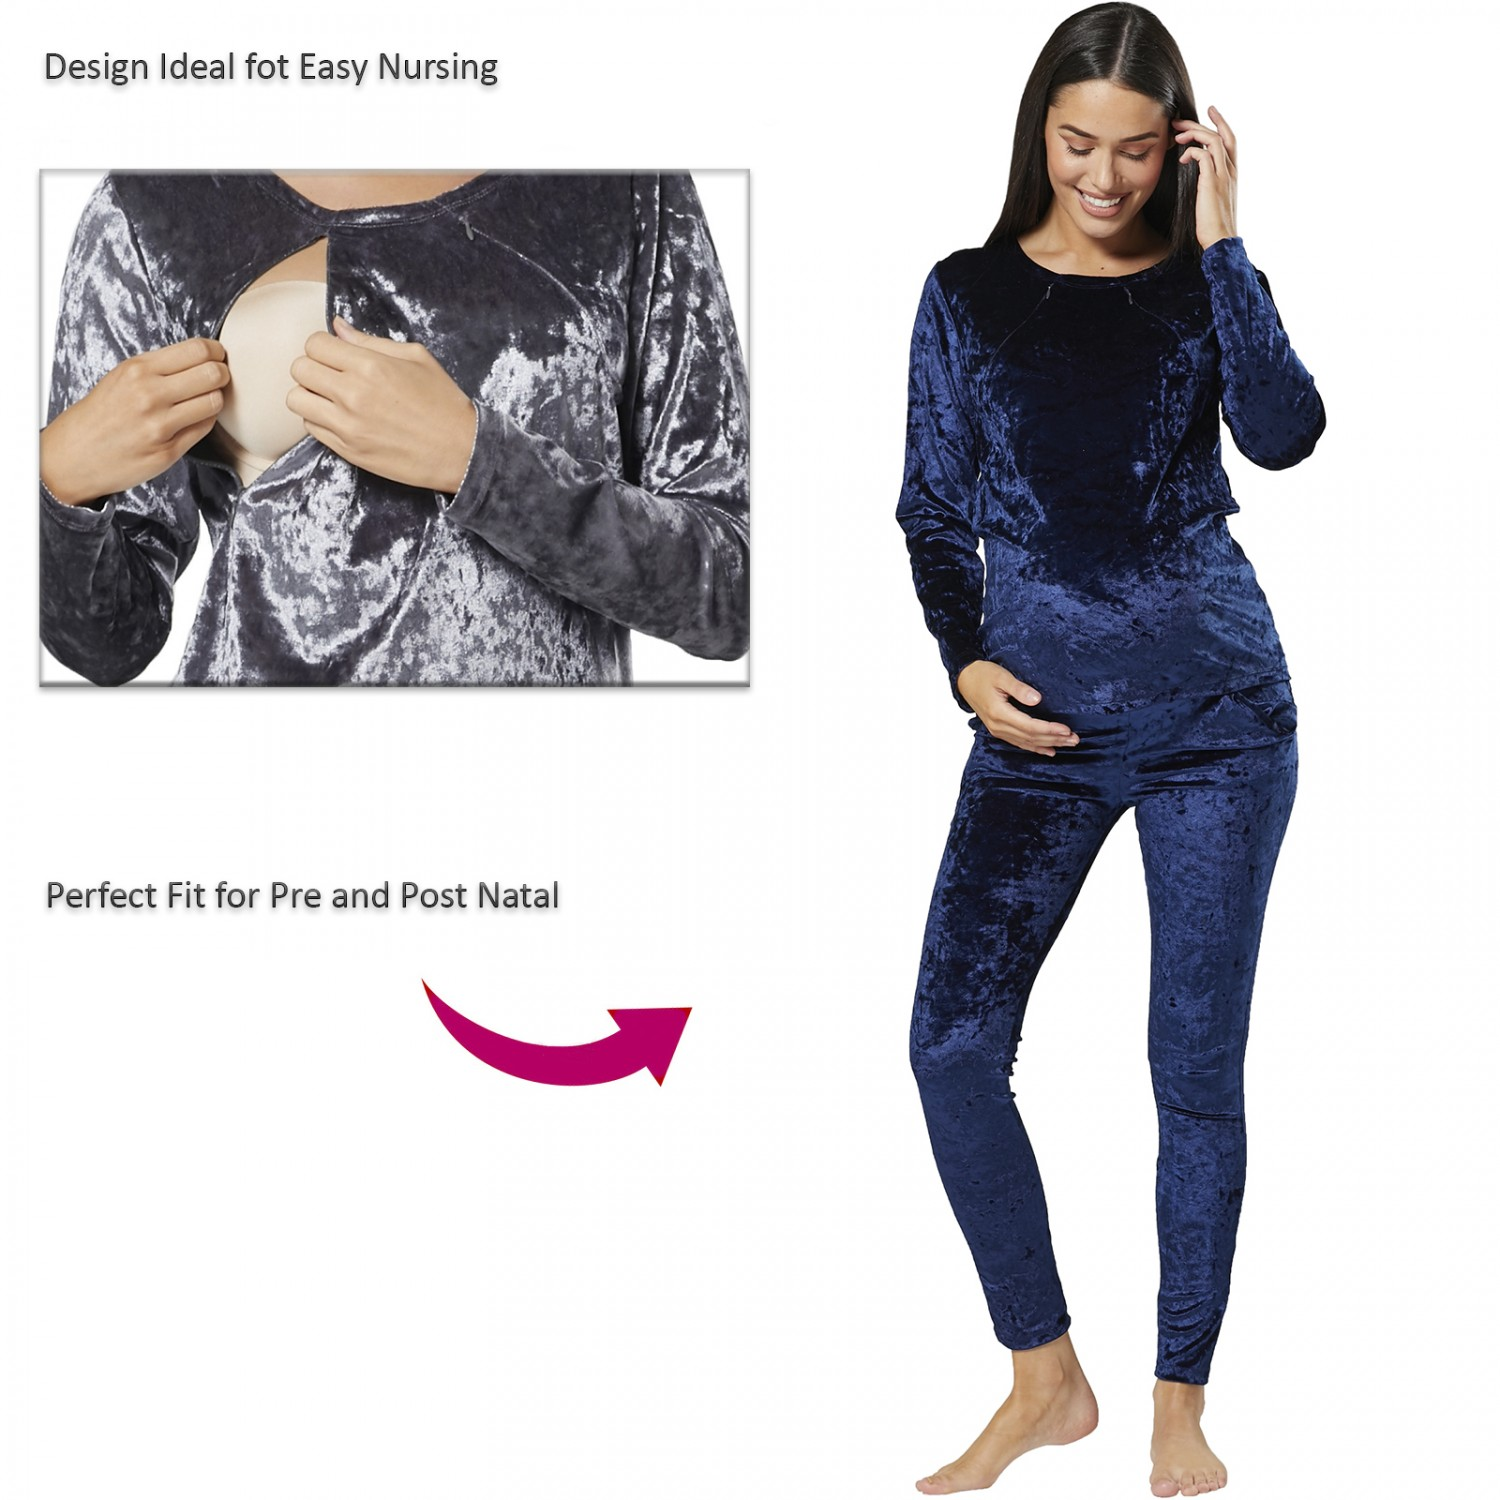 Petite 1125 HAPPY MAMA Womens Lounge Velvet Maternity /& Nursing Pyjamas Set